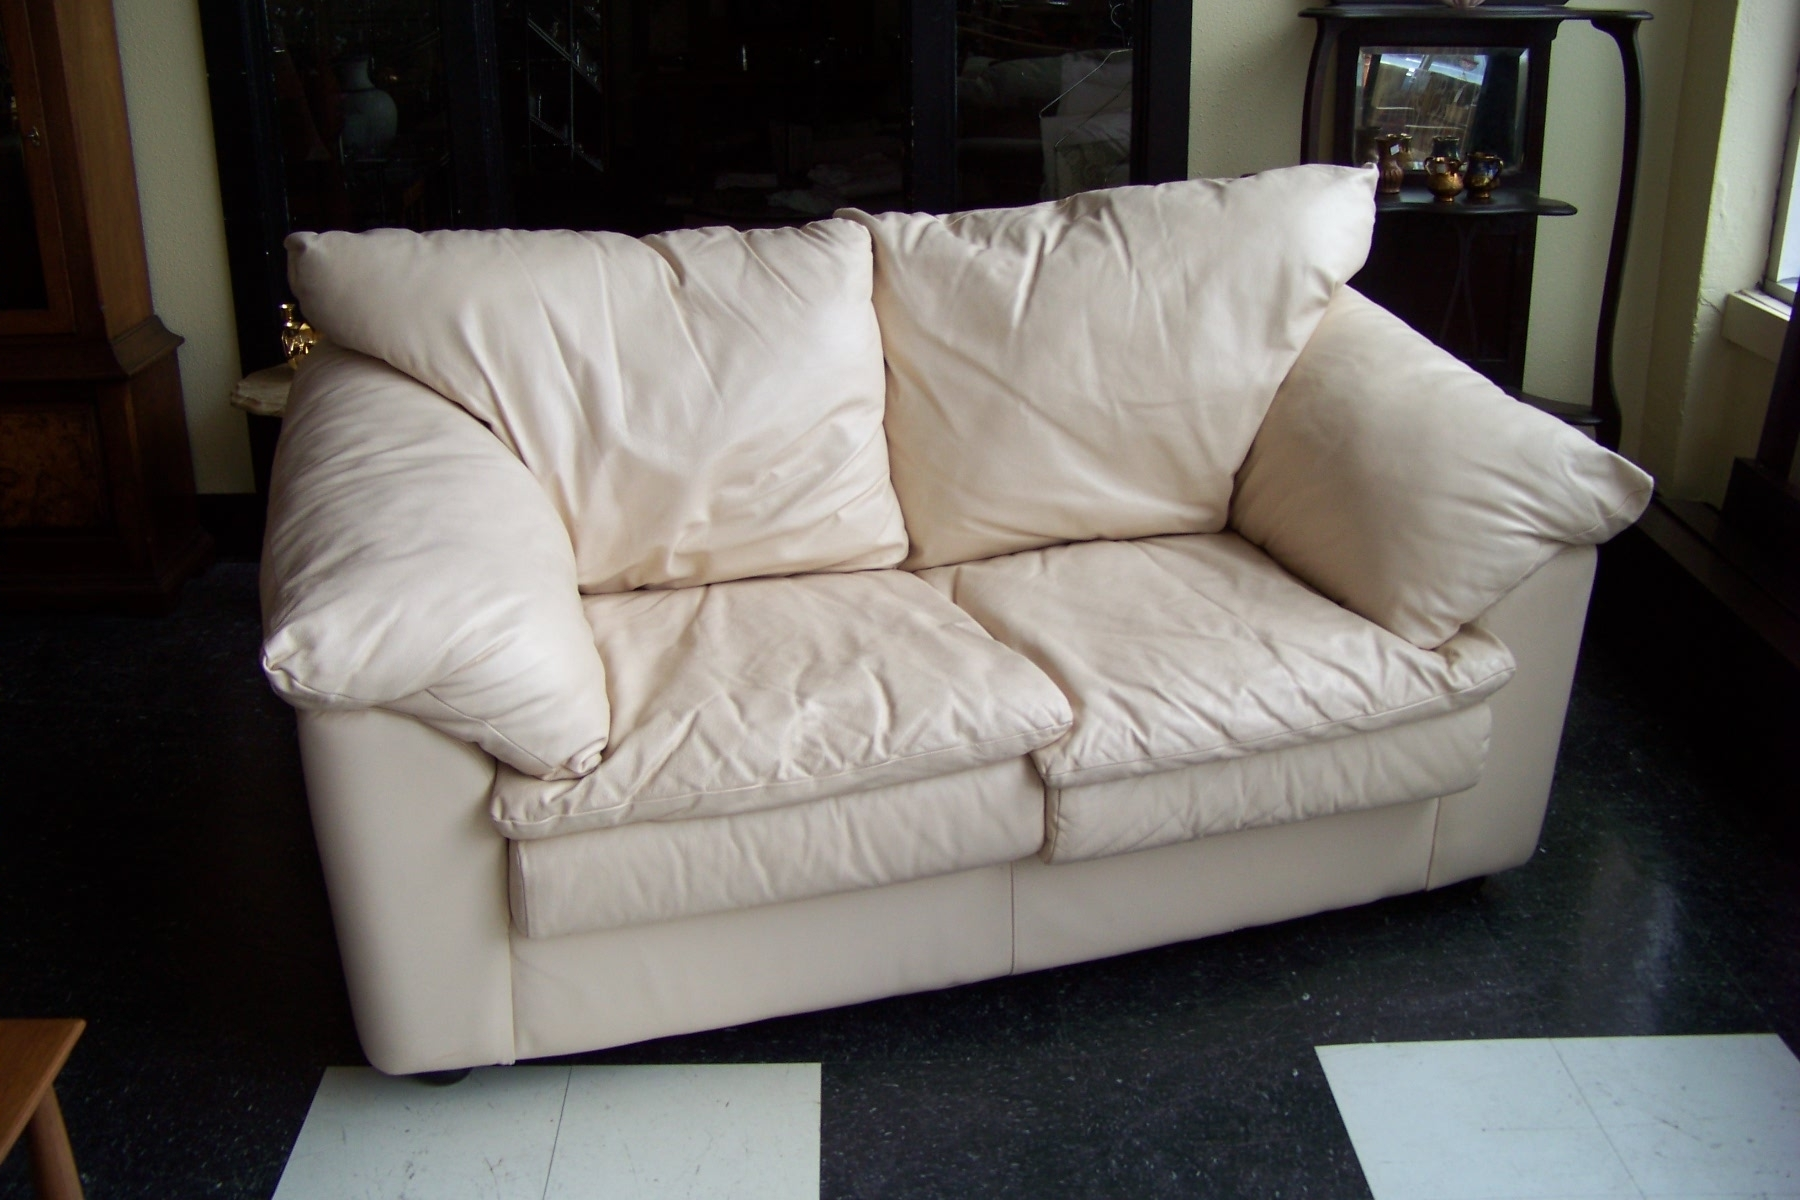 Preferred Articles With Cream Colored Leather Sofa Set Tag Couch Camel Regarding Cream Colored Sofas (View 18 of 20)